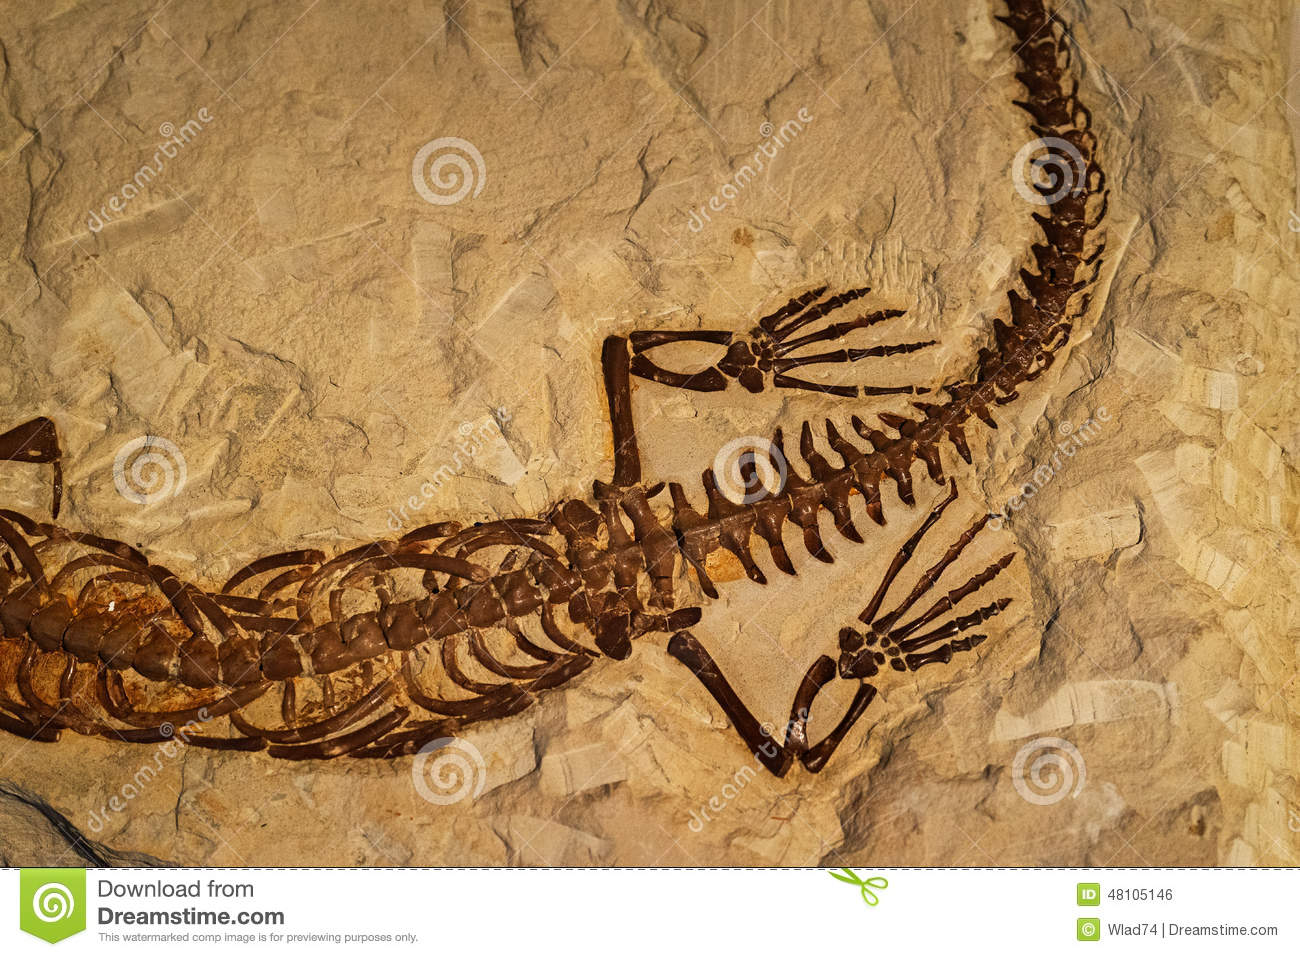 Fossile De Reptile Antique Dans La Roche Photo Stock